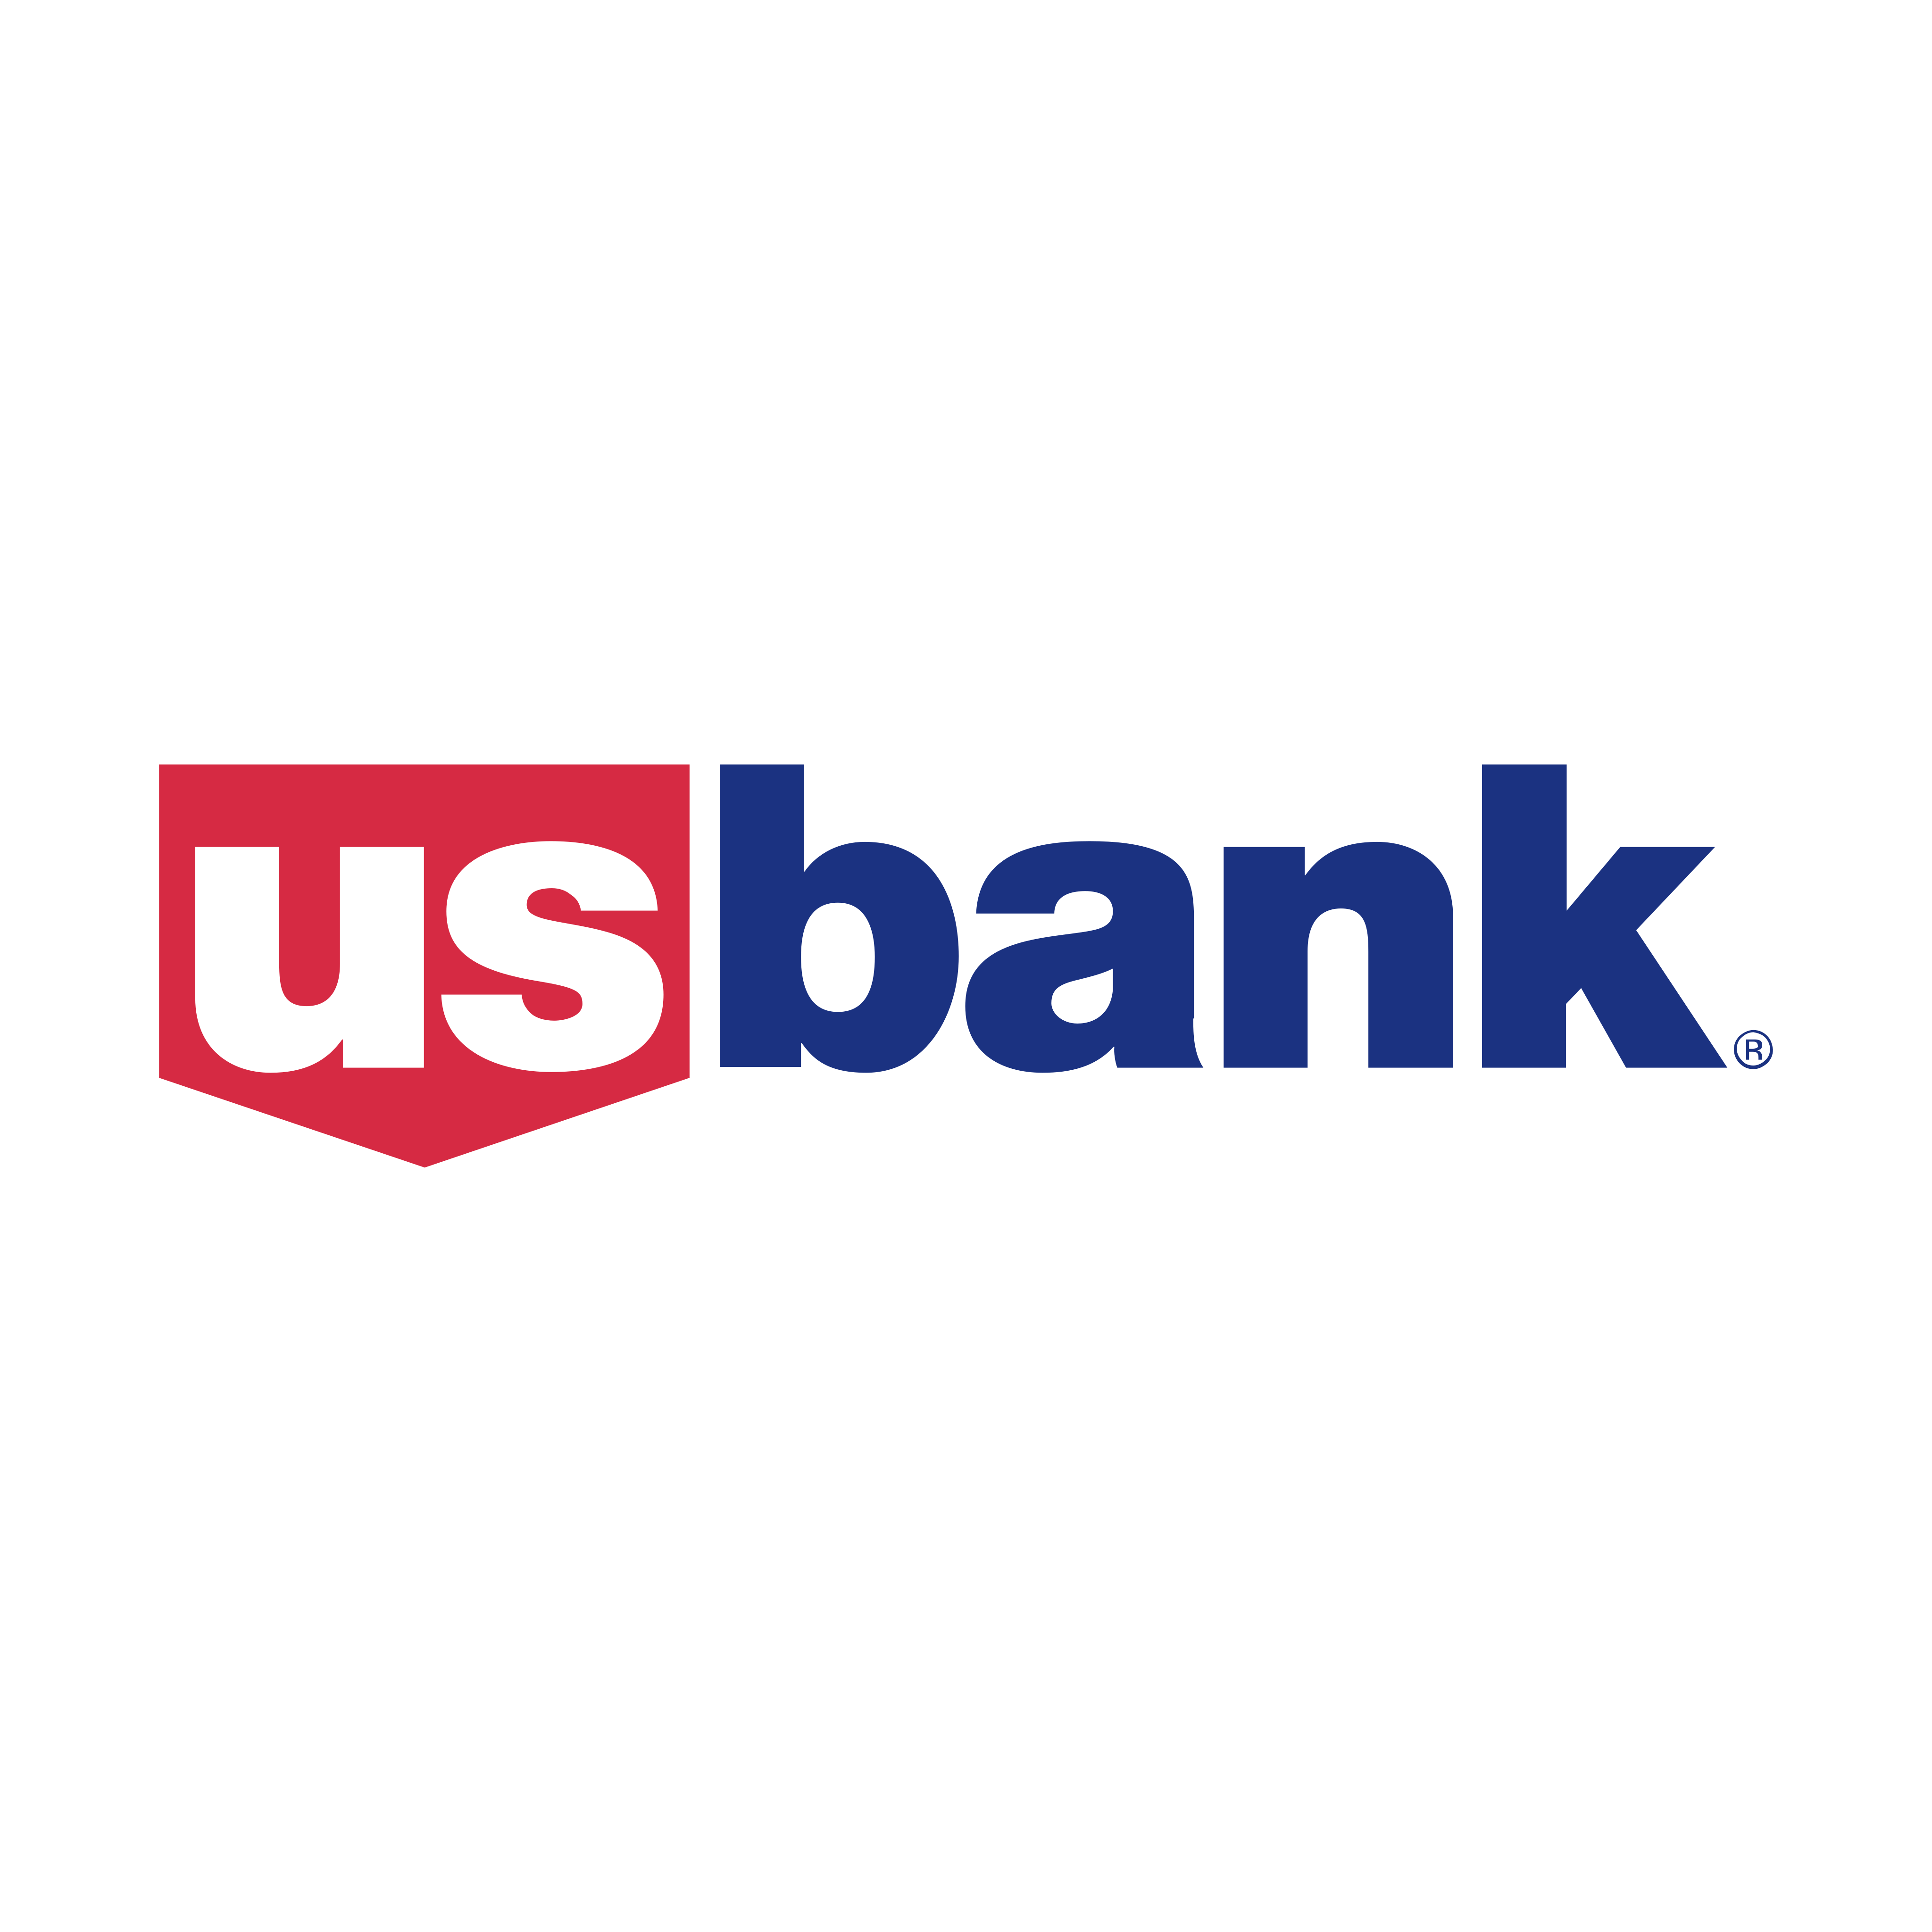 us bank logo 0 - US Bank Logo